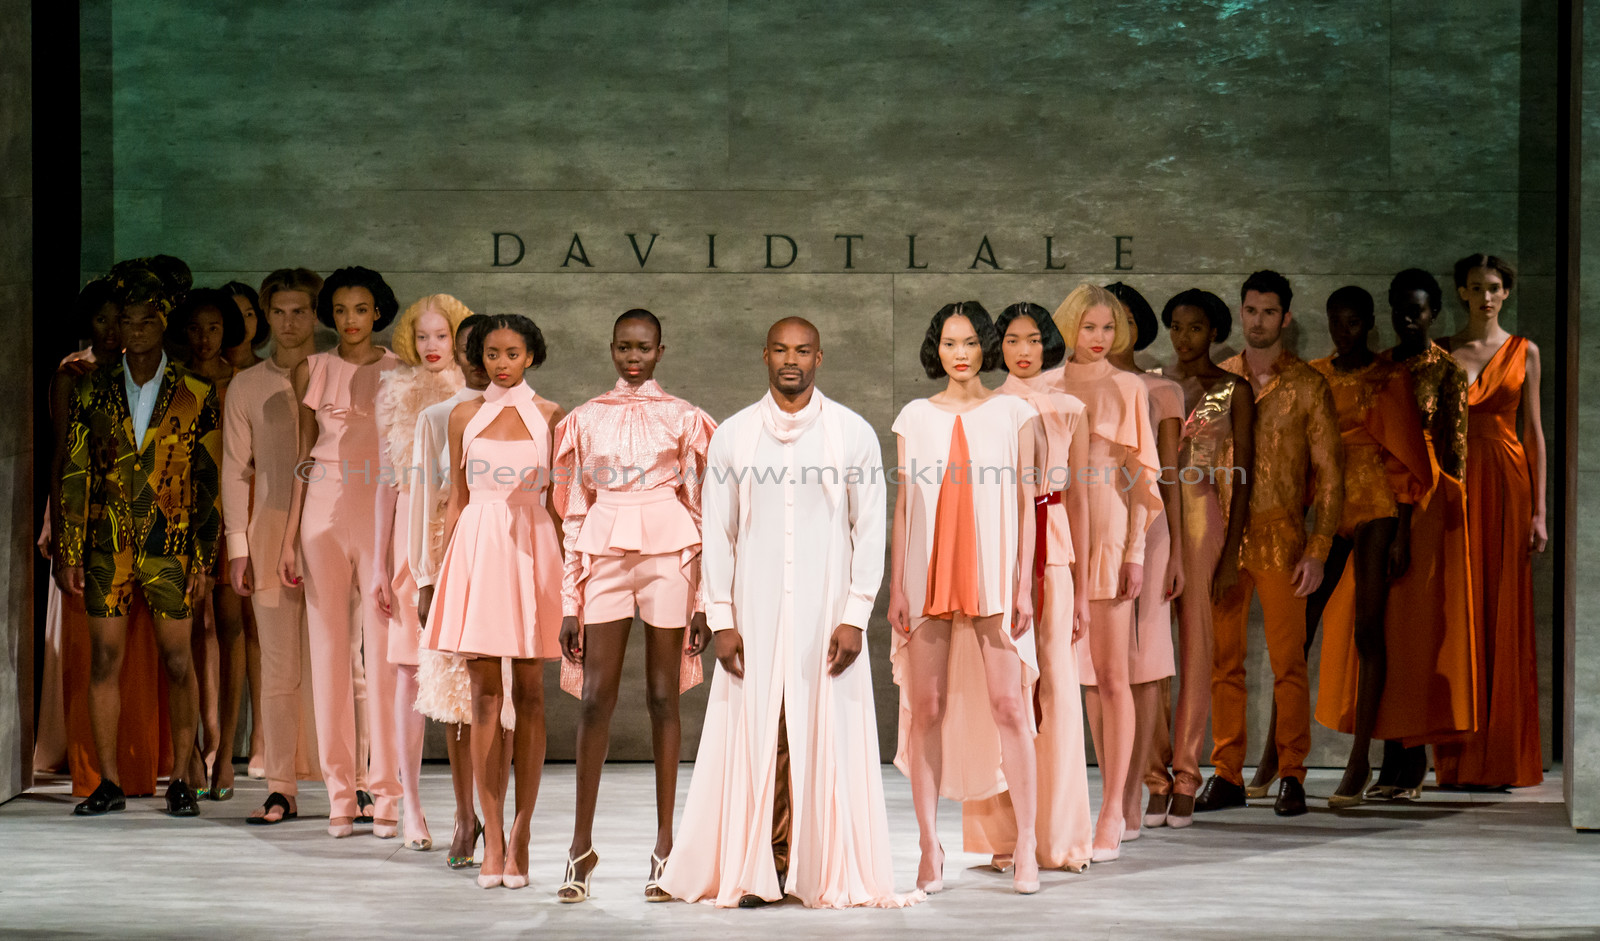 Mercedes-Benz Fashion Week w/ David Tlale